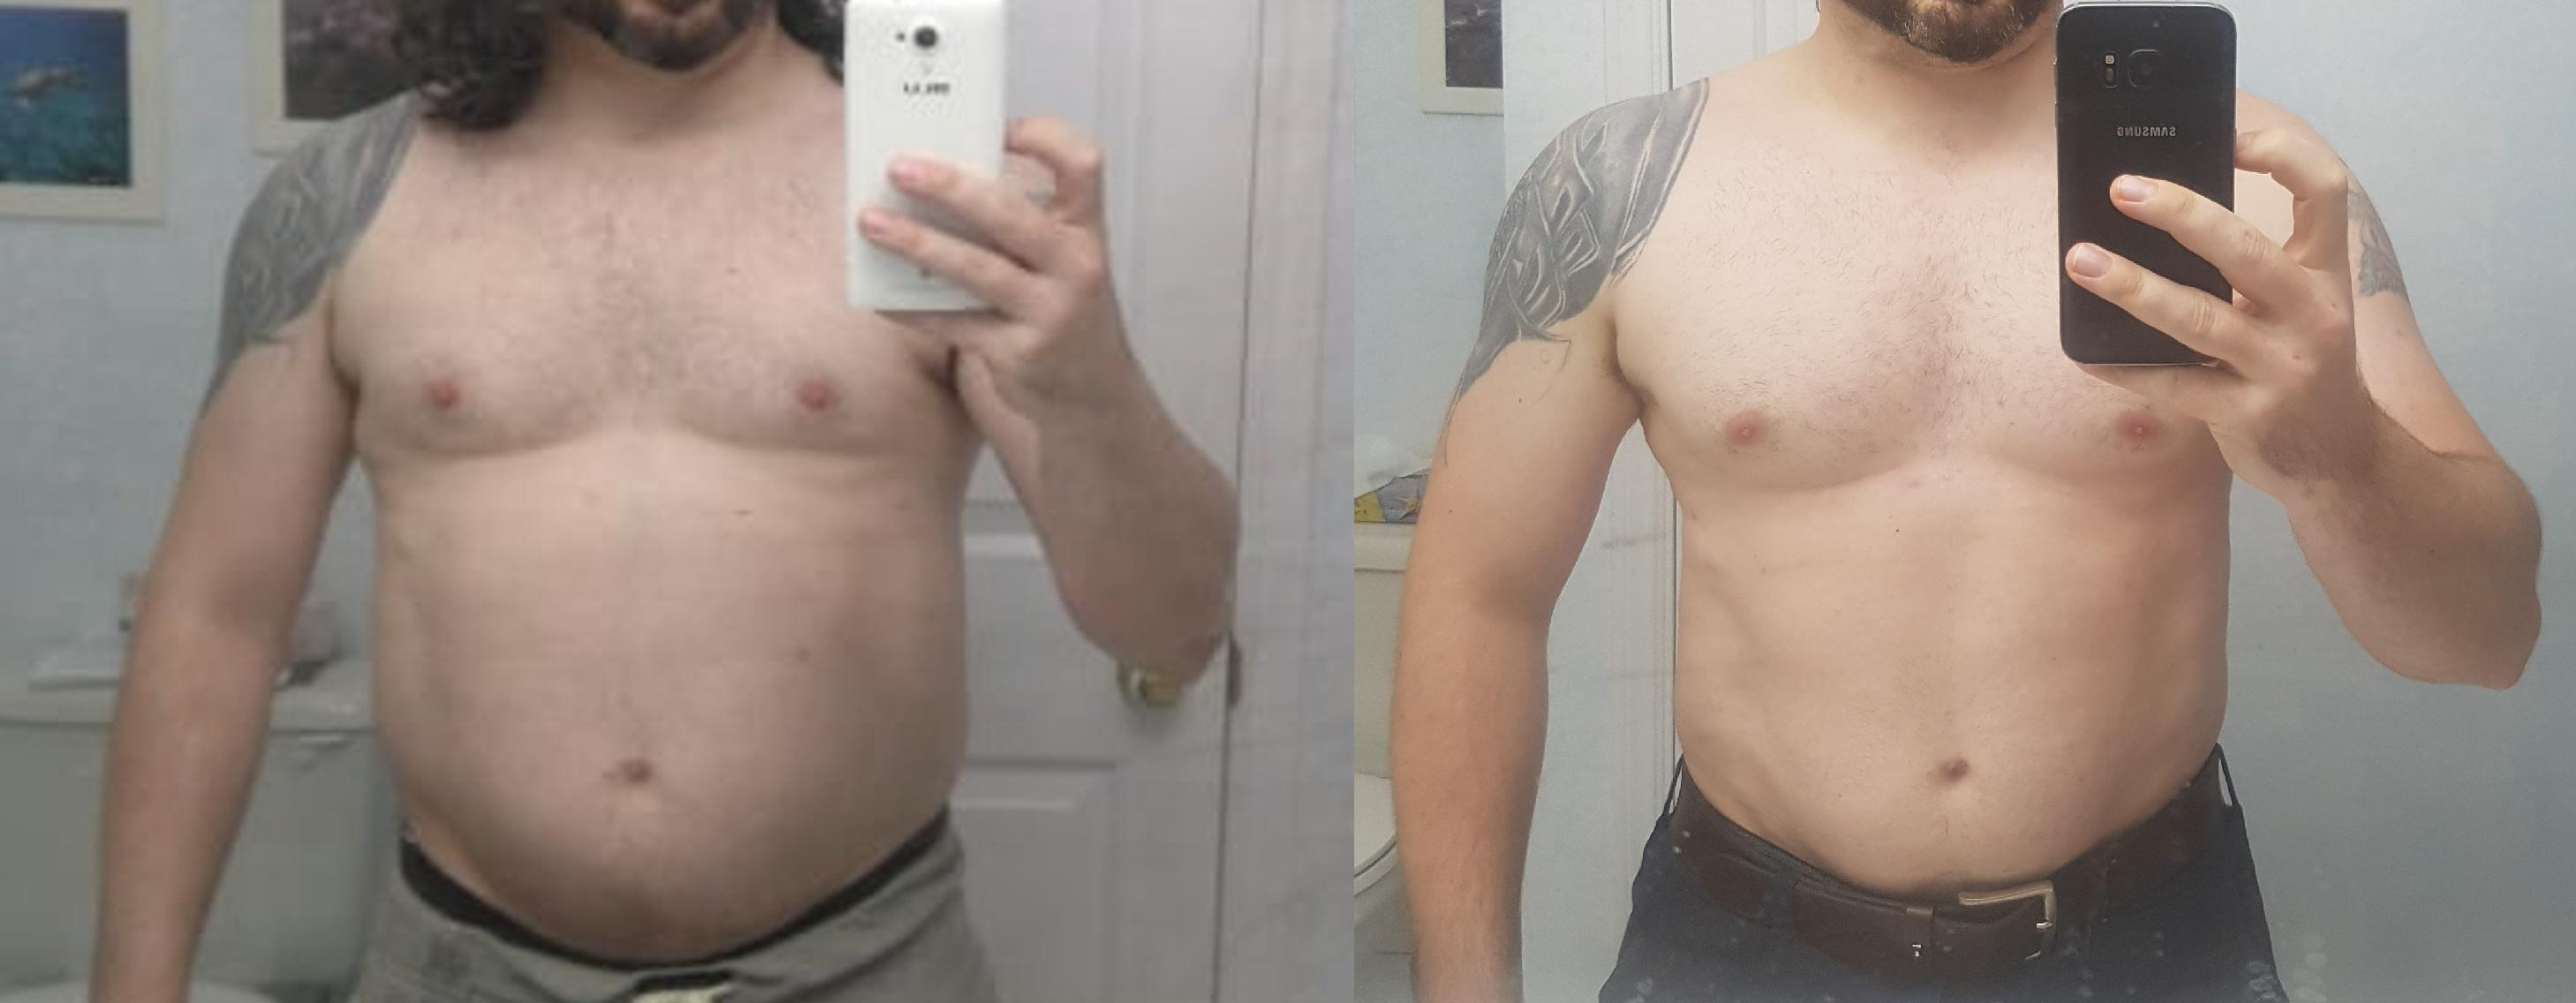 5 feet 6 Male Before and After 16 lbs Weight Loss 207 lbs to 191 lbs